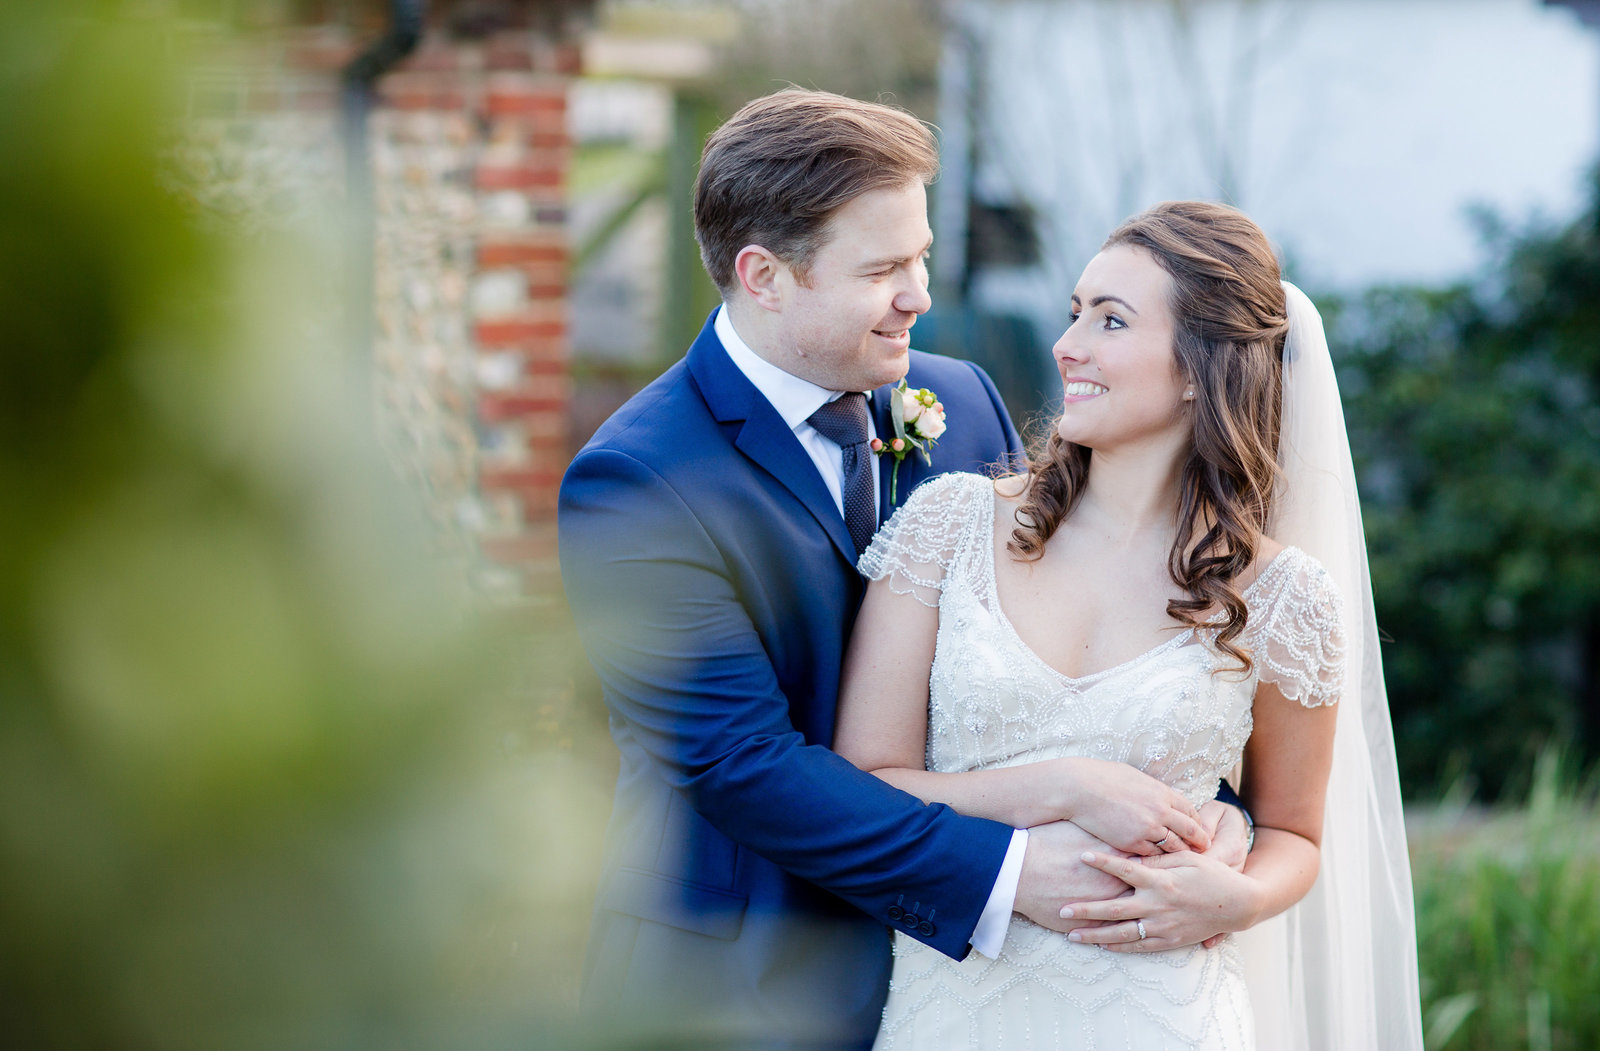 adorlee-0922-southend-barns-wedding-photographer-chichester-west-sussex